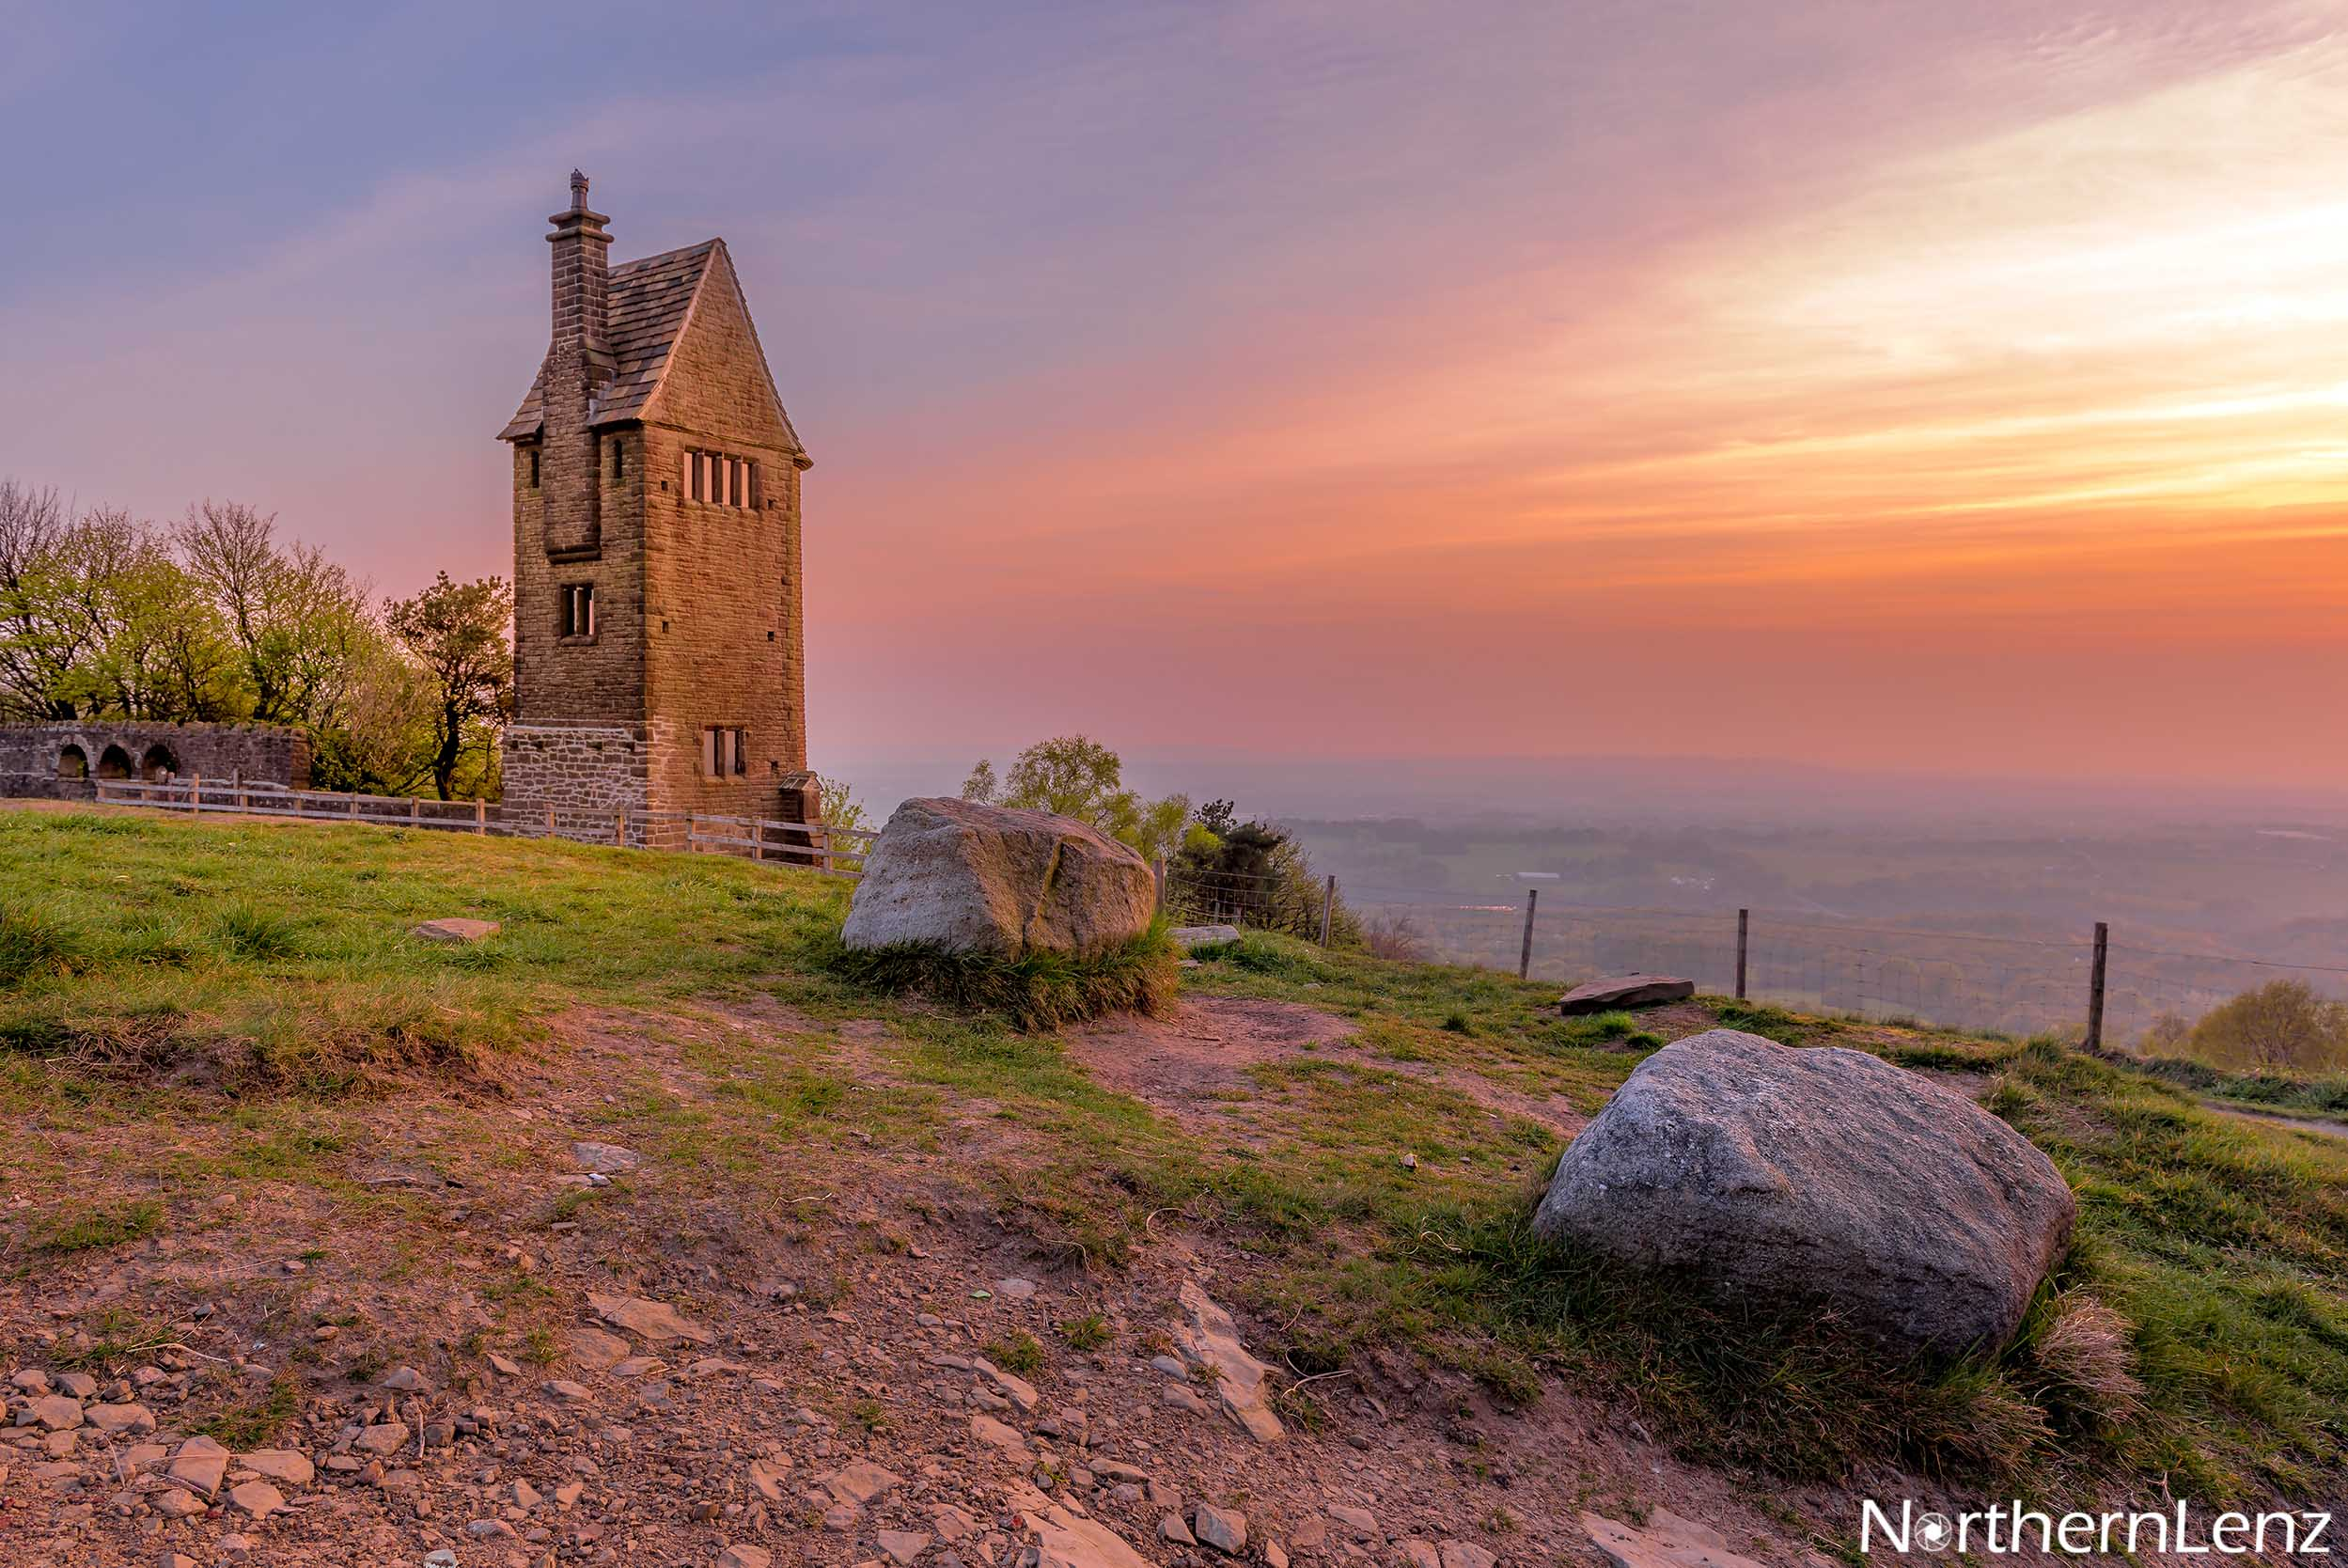 The Pigeon Tower at Rivington basking in a spring sunrise  Image Ref: LD07